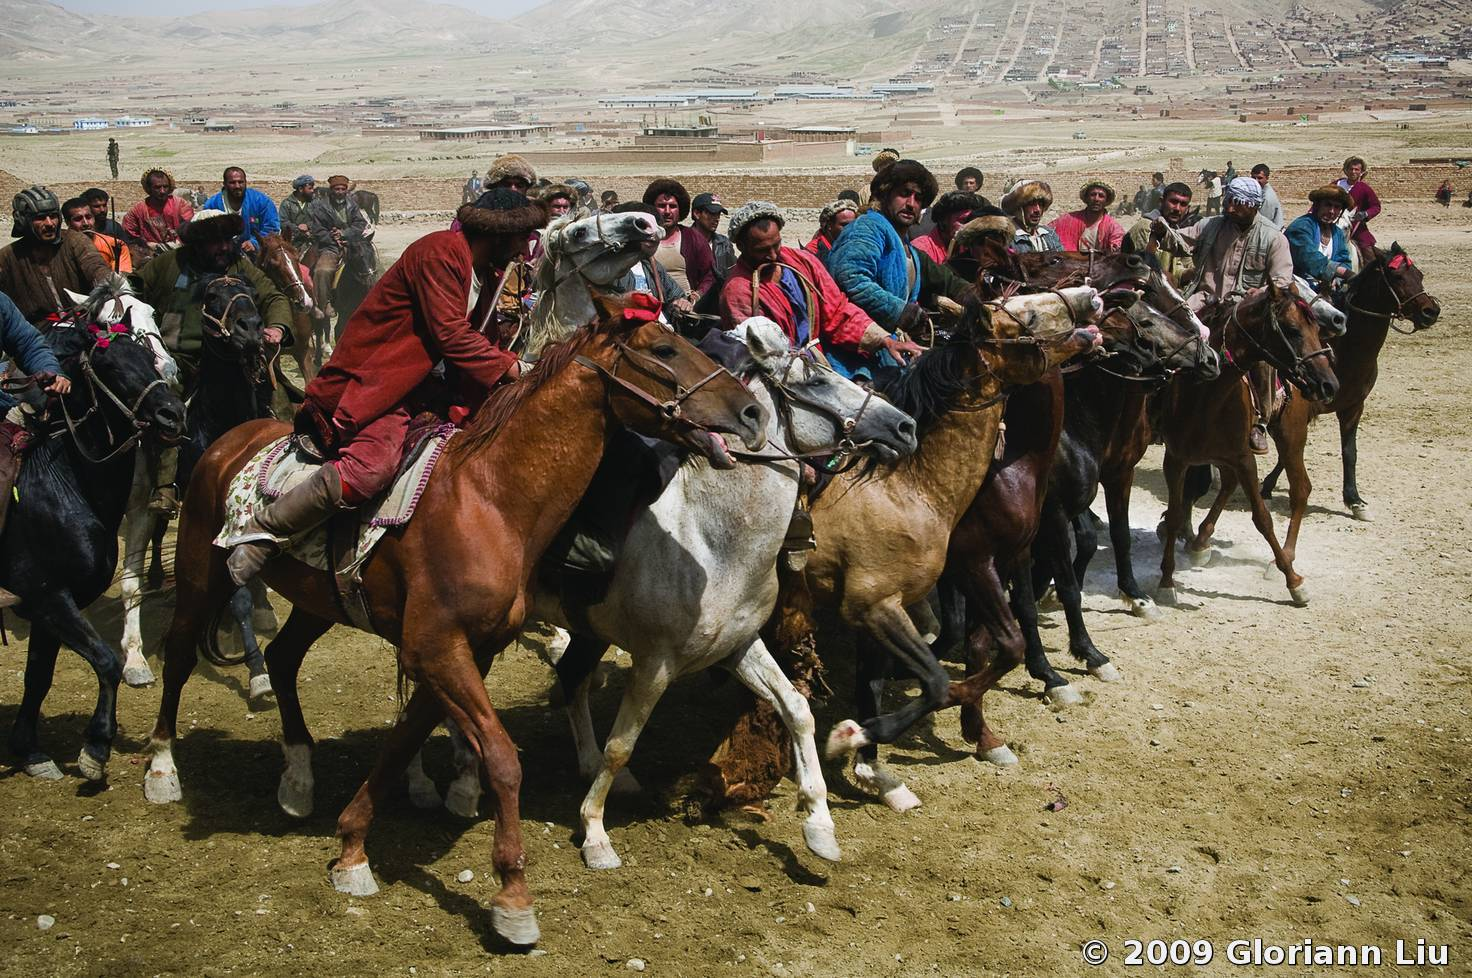 buzkashi in afghanistan Buzkashi is afghanistan's national game and is a brutal struggle between men endeavouring to ride around an unmarked area holding onto a calf's carcass before dumping it in a designated circle.